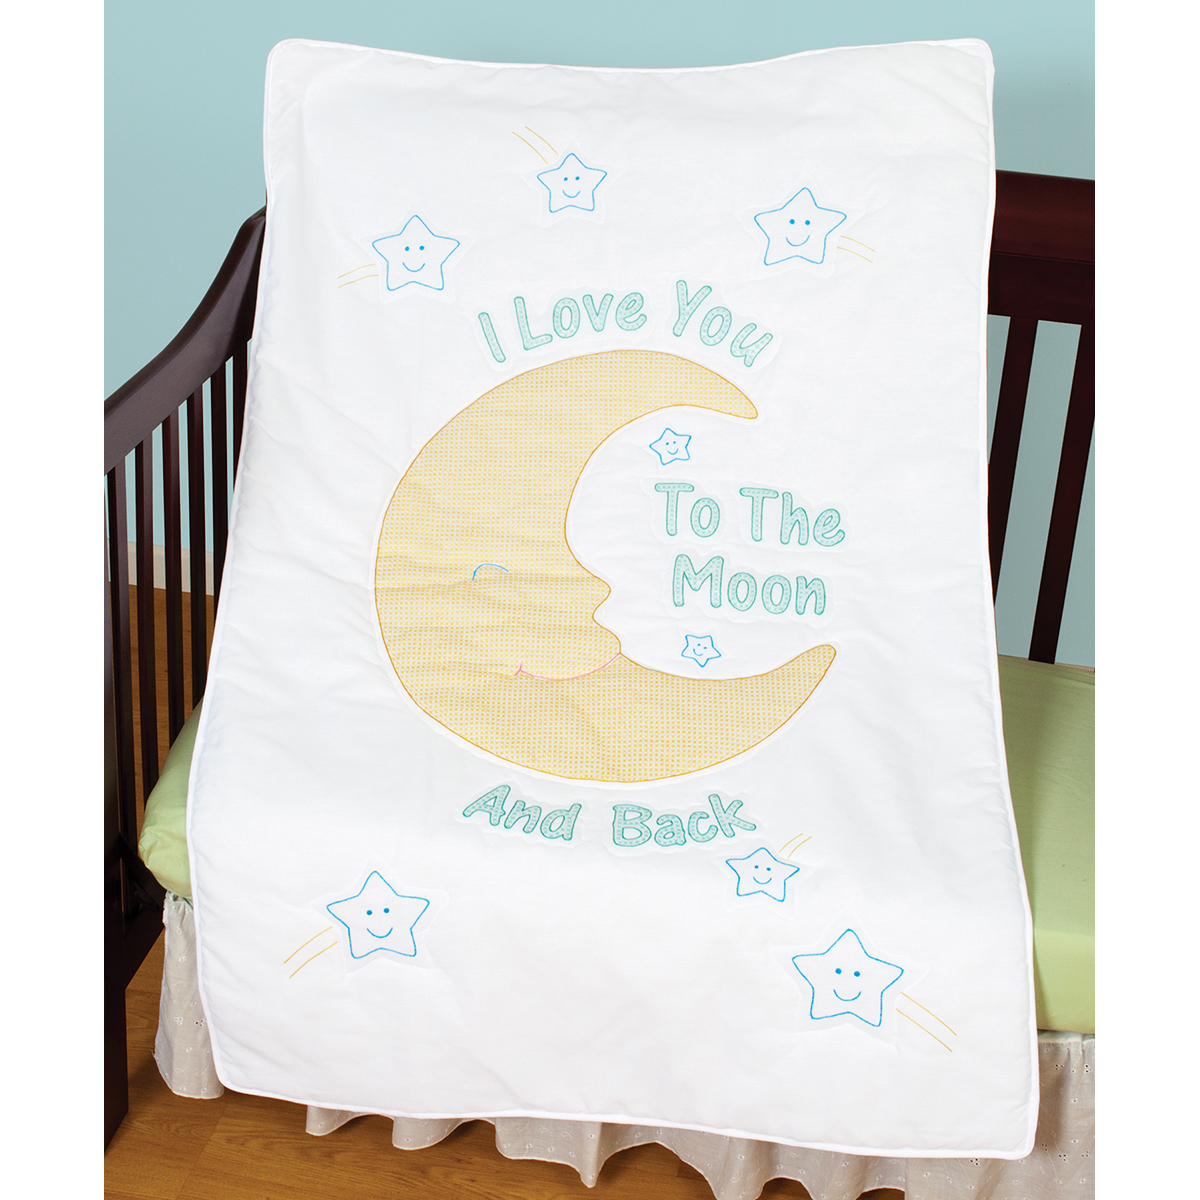 Stamped Embroidery Crib Top - I Love You to the Moon